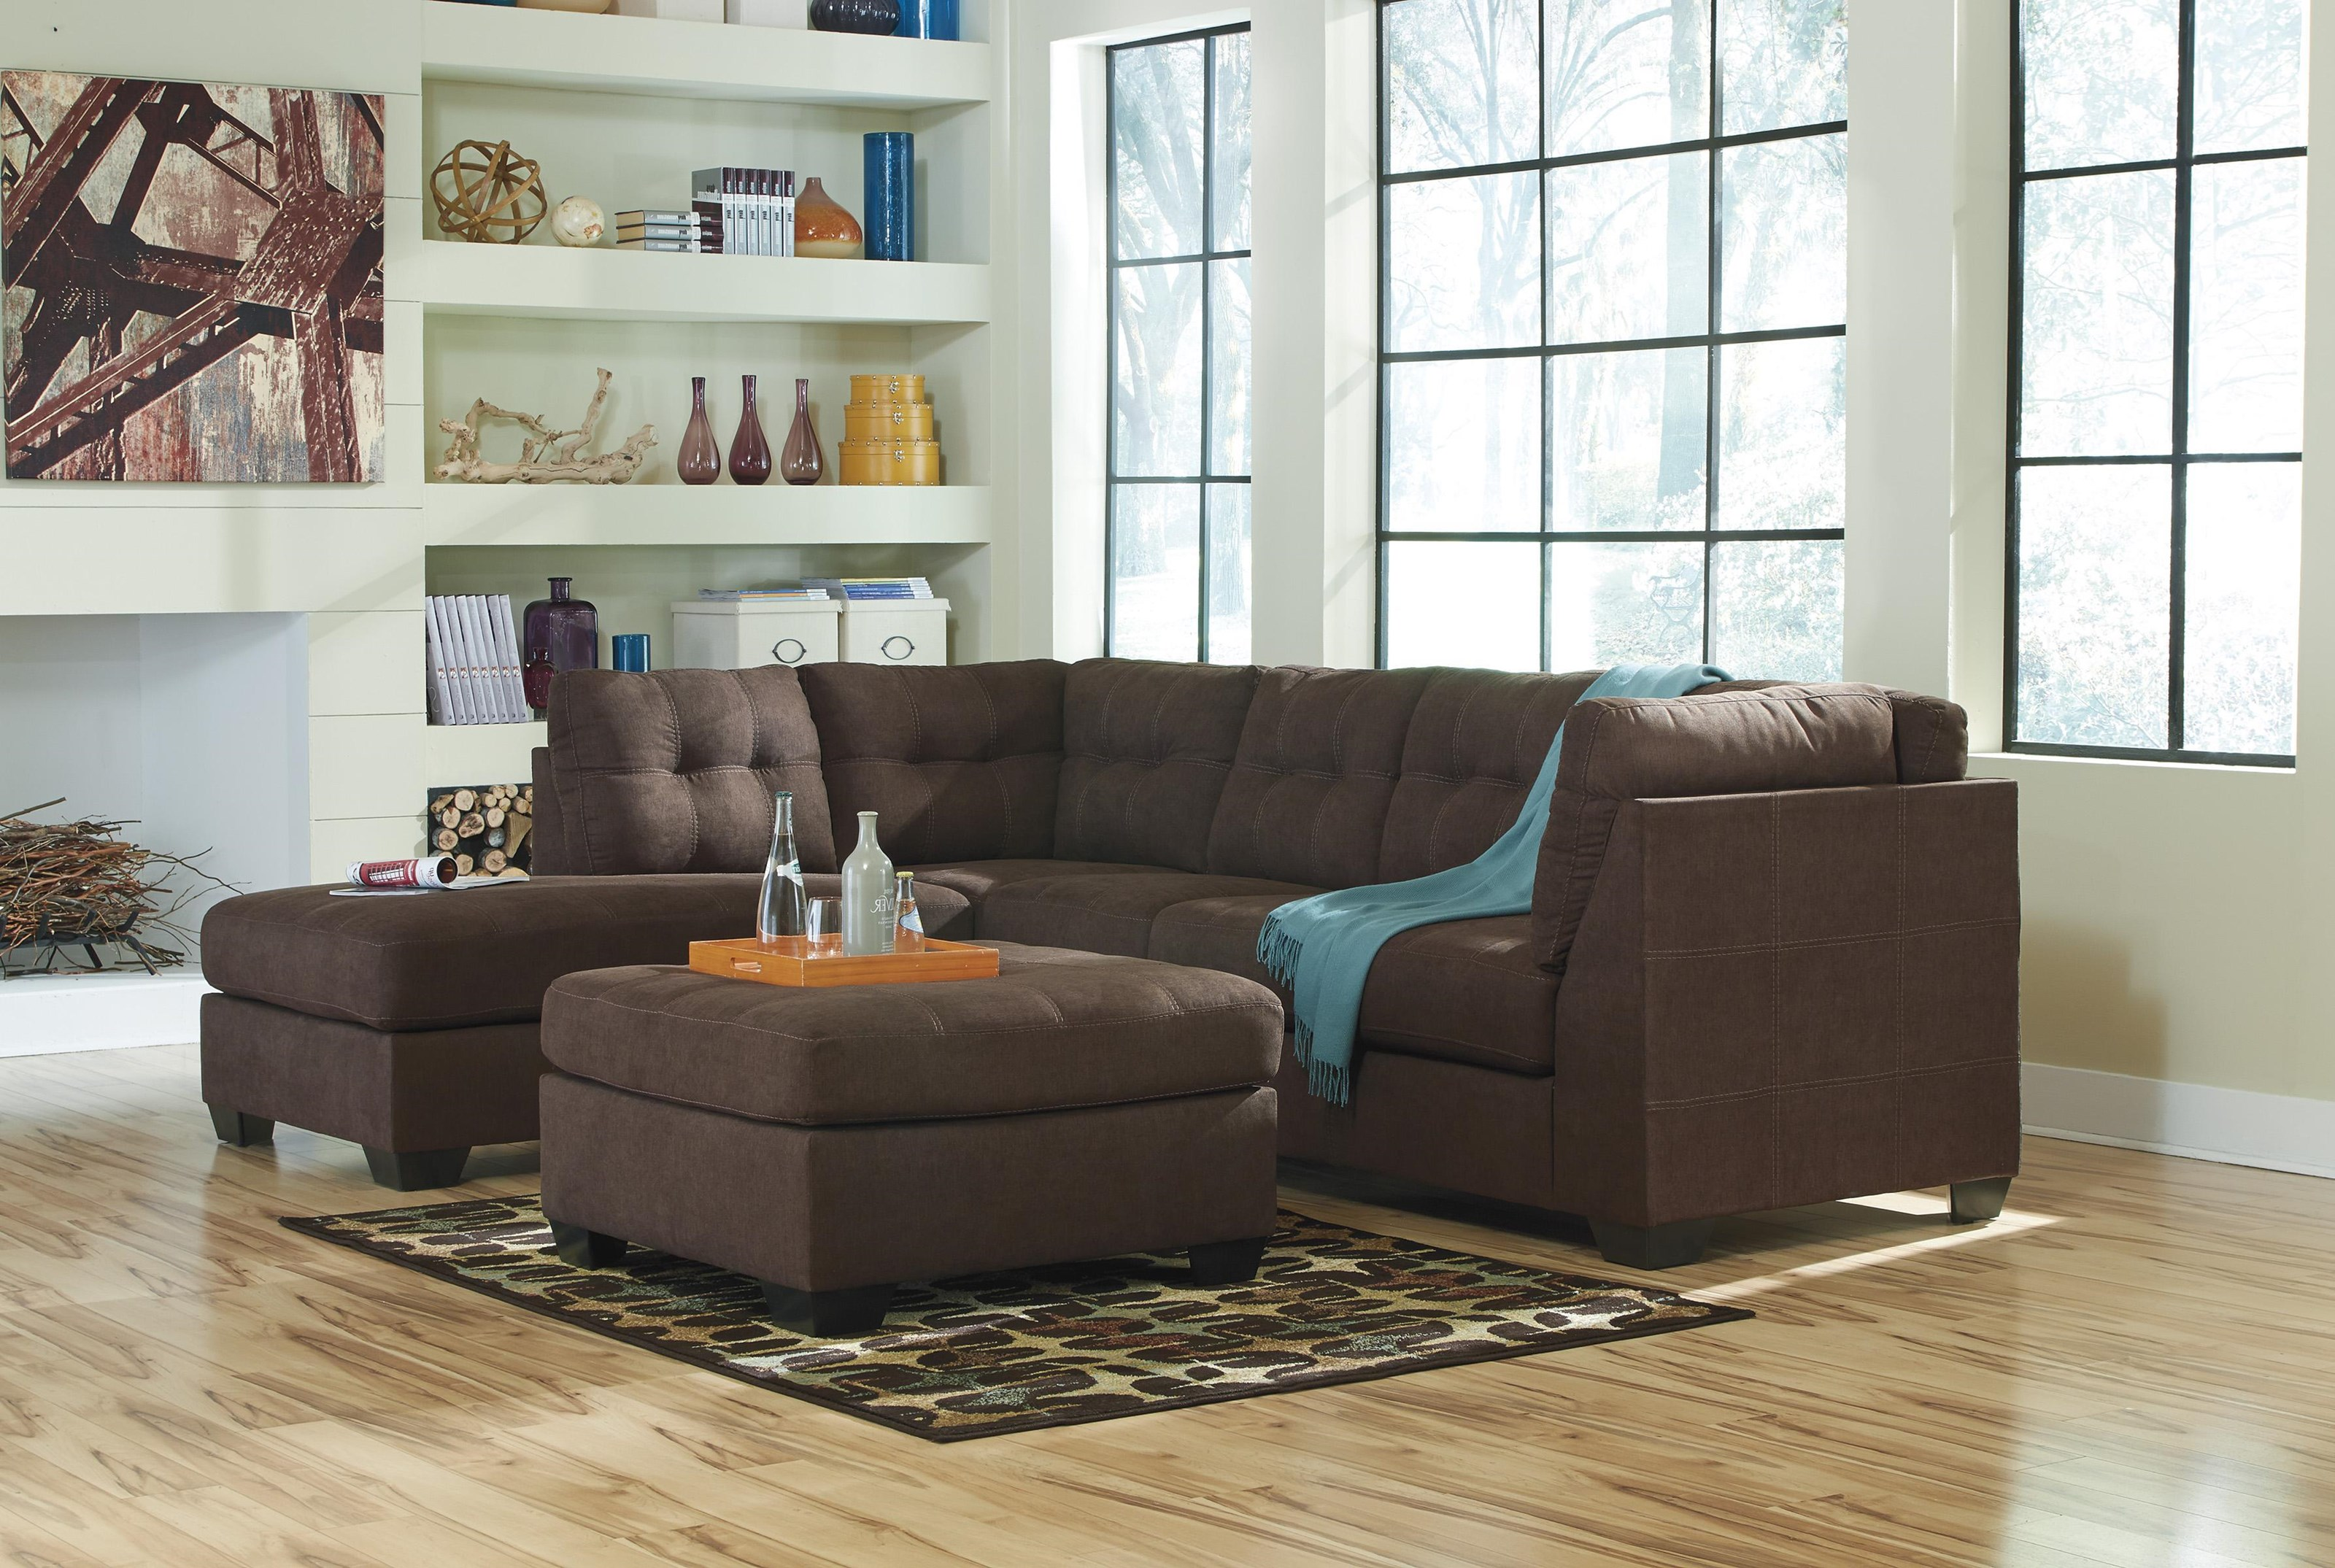 Maier - Charcoal 2-Piece Sectional with Chaise And Ottoman by Benchcraft at Johnny Janosik